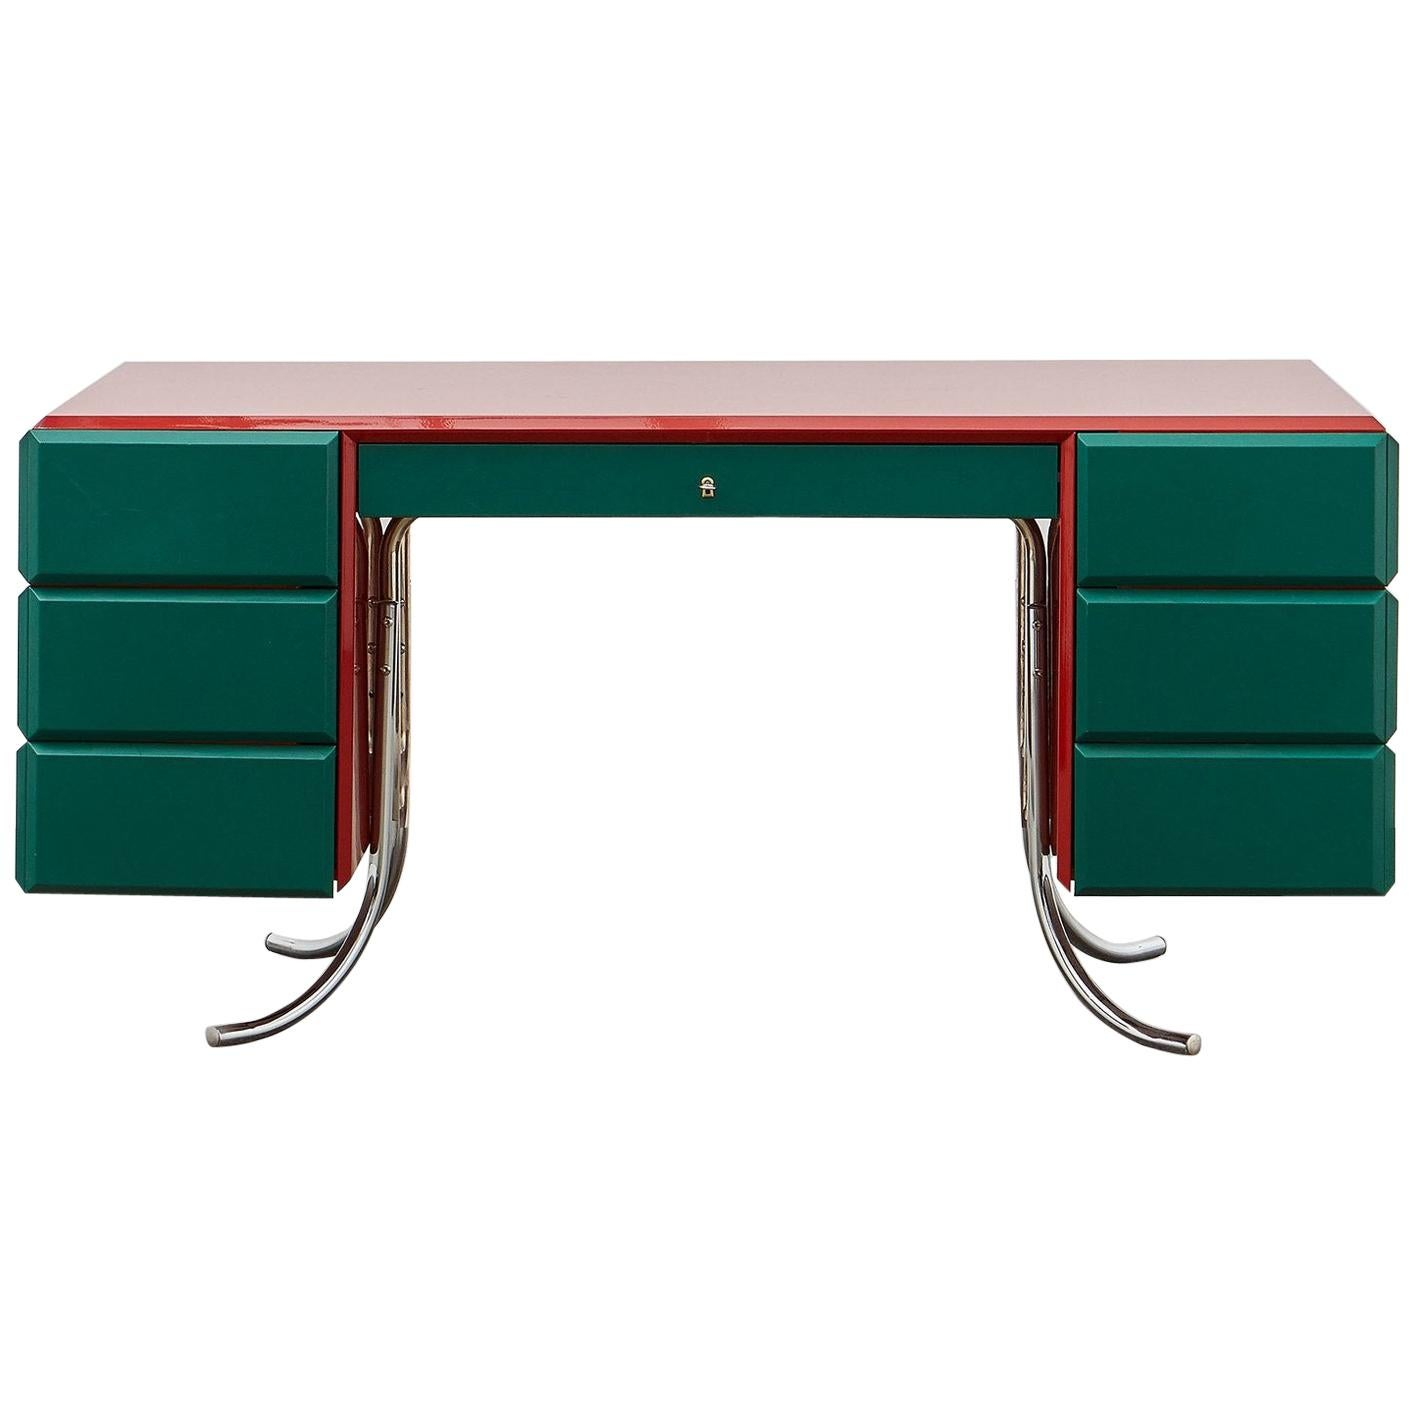 PH Office Desk, Chrome, Red Painted Polished, Satin Matt Drawers, Green Leather